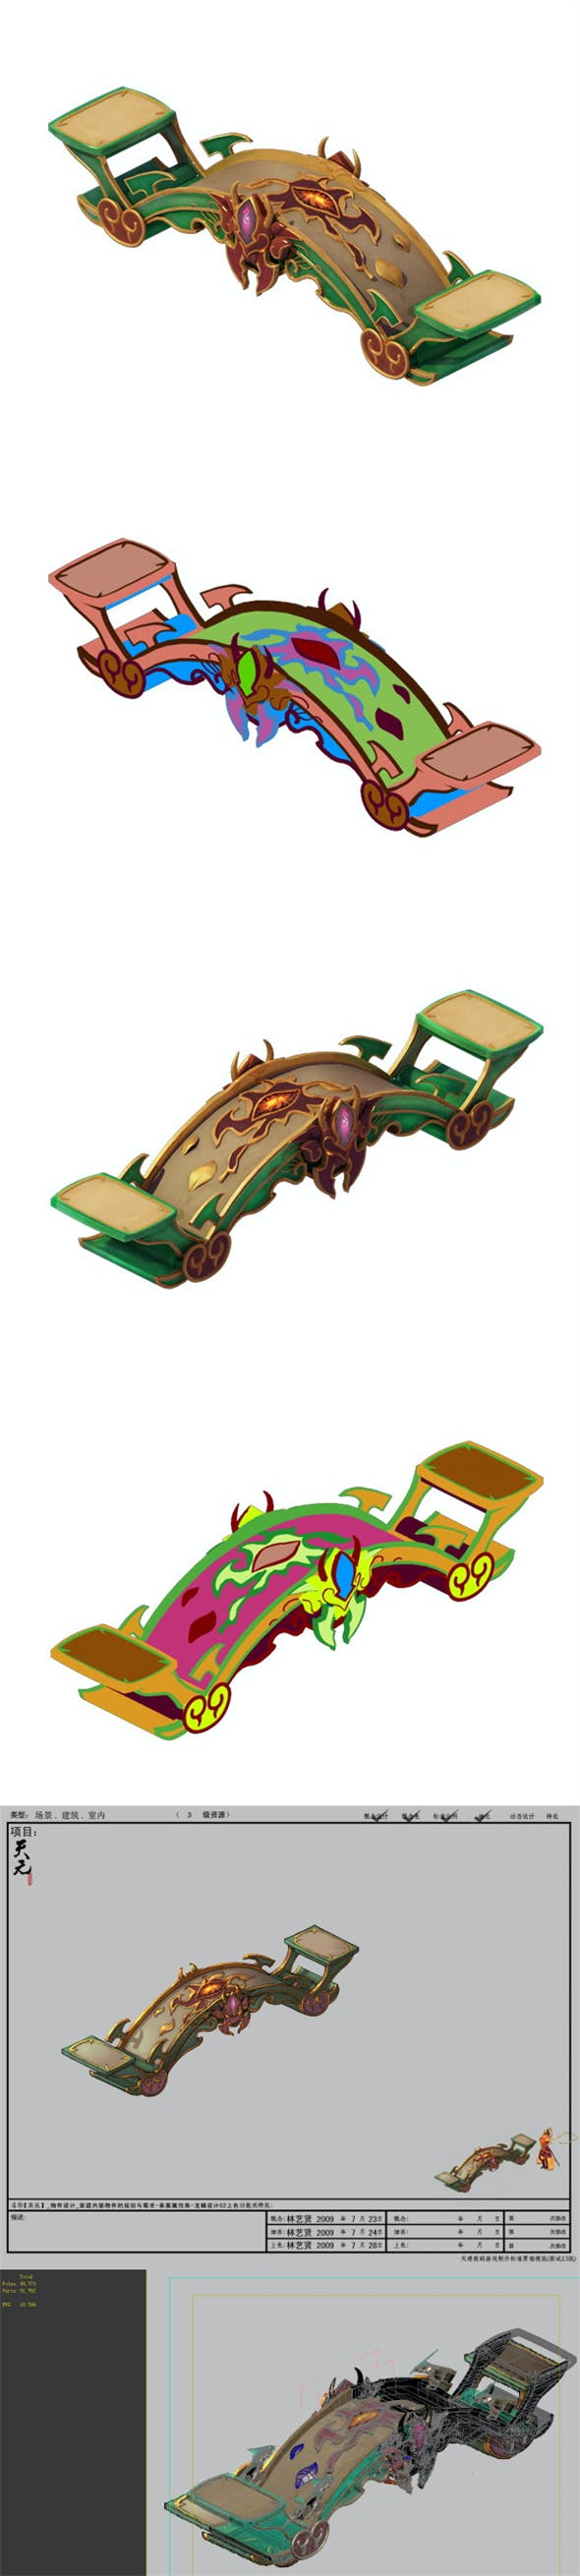 Game Model - Family Objects - Dragonscale Table Case 02 - 3DOcean Item for Sale